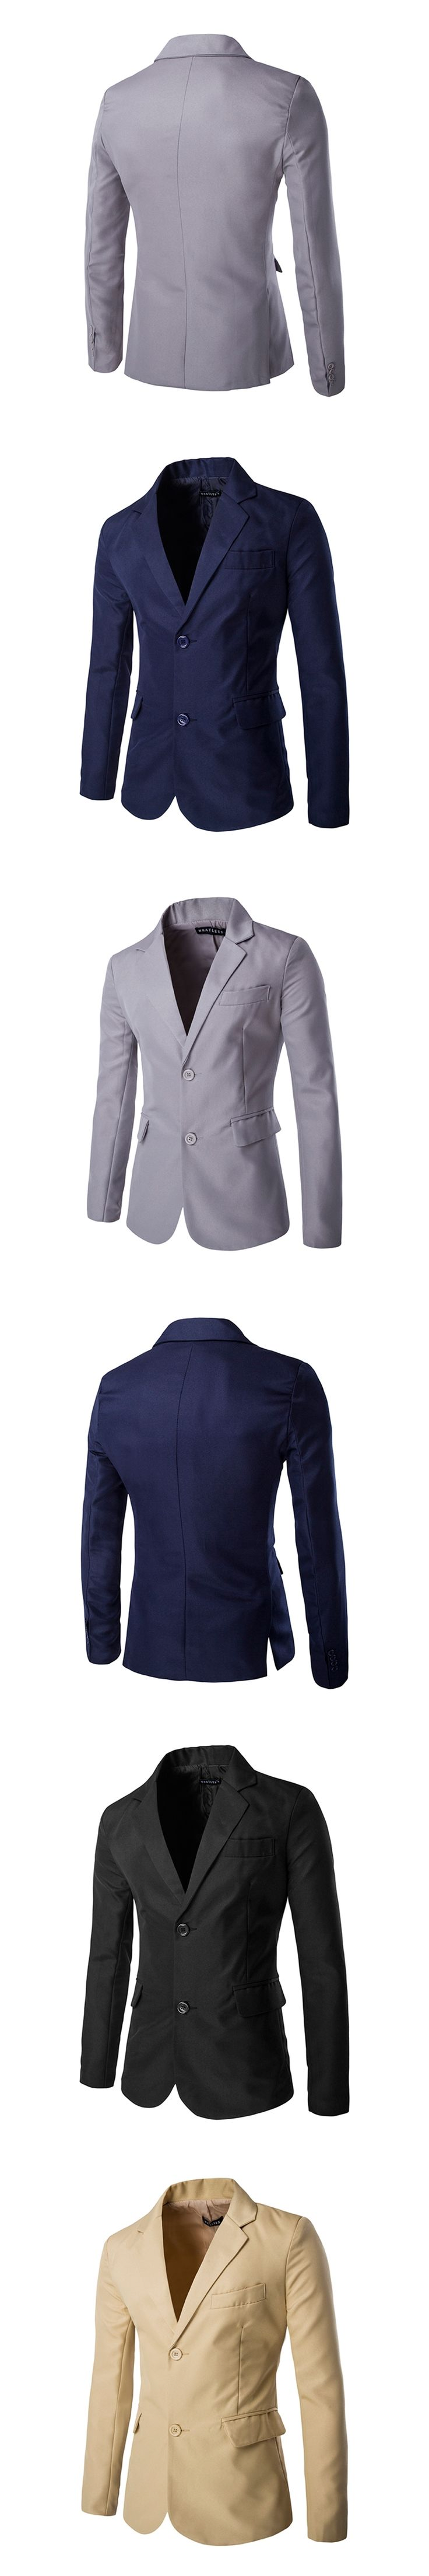 HOT Sale!!Gentleman Fashionable Slim fit  Stylish Single Breasted Blazer Solid Mens Coat  Mens Pullover   PX70